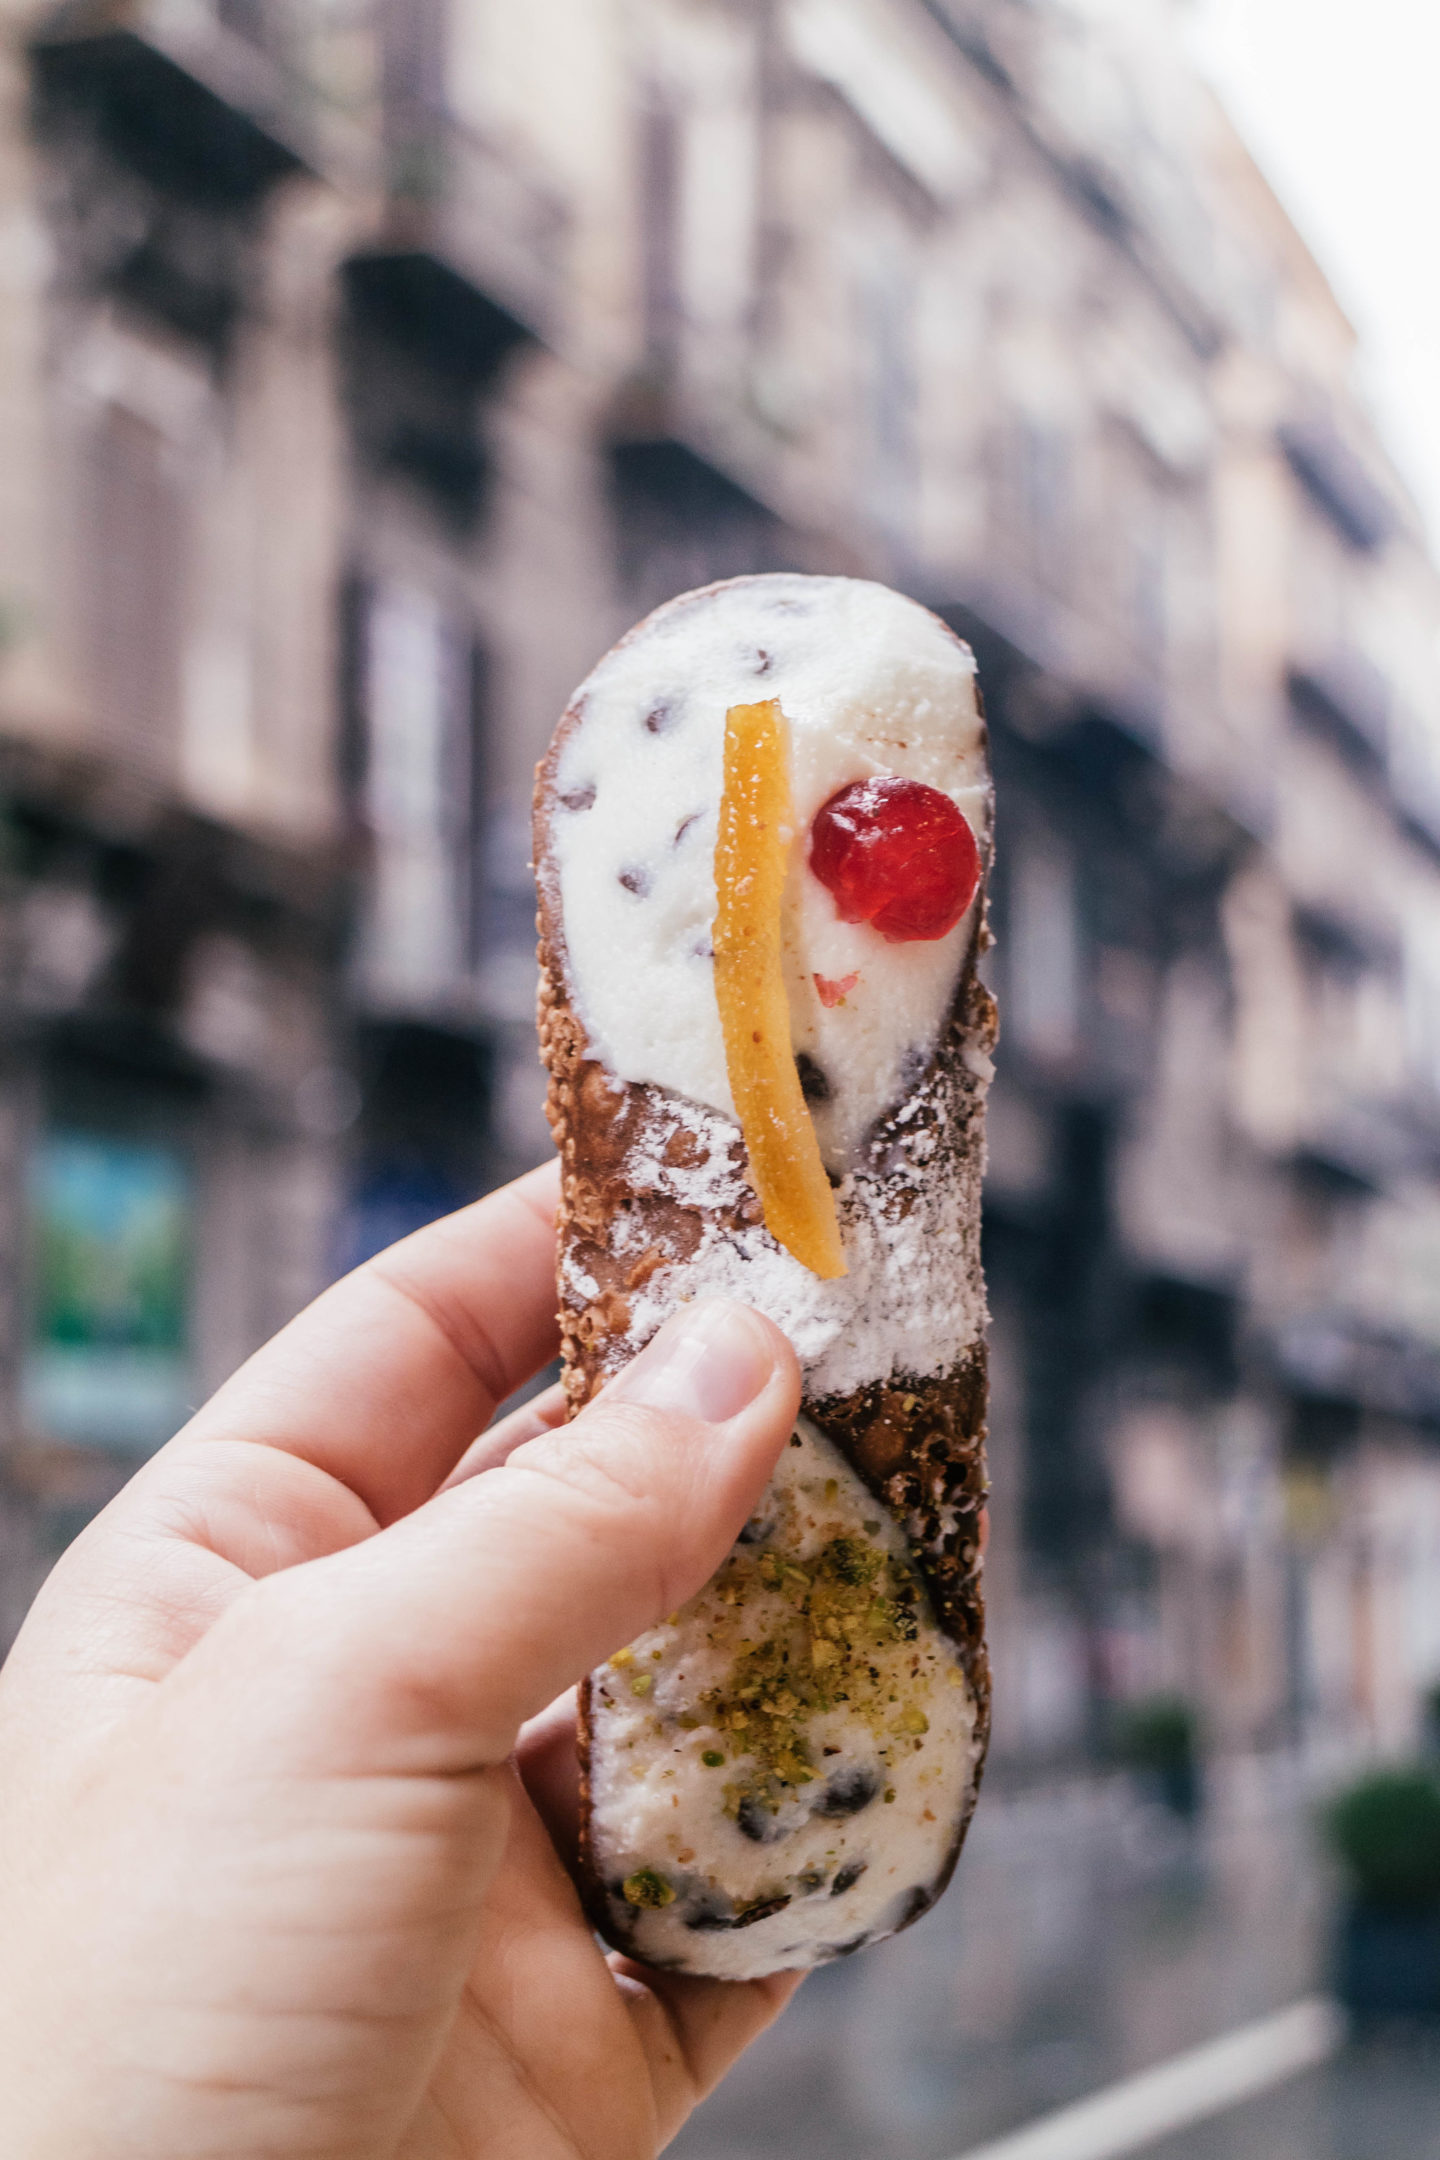 cannoli in palermo, italy